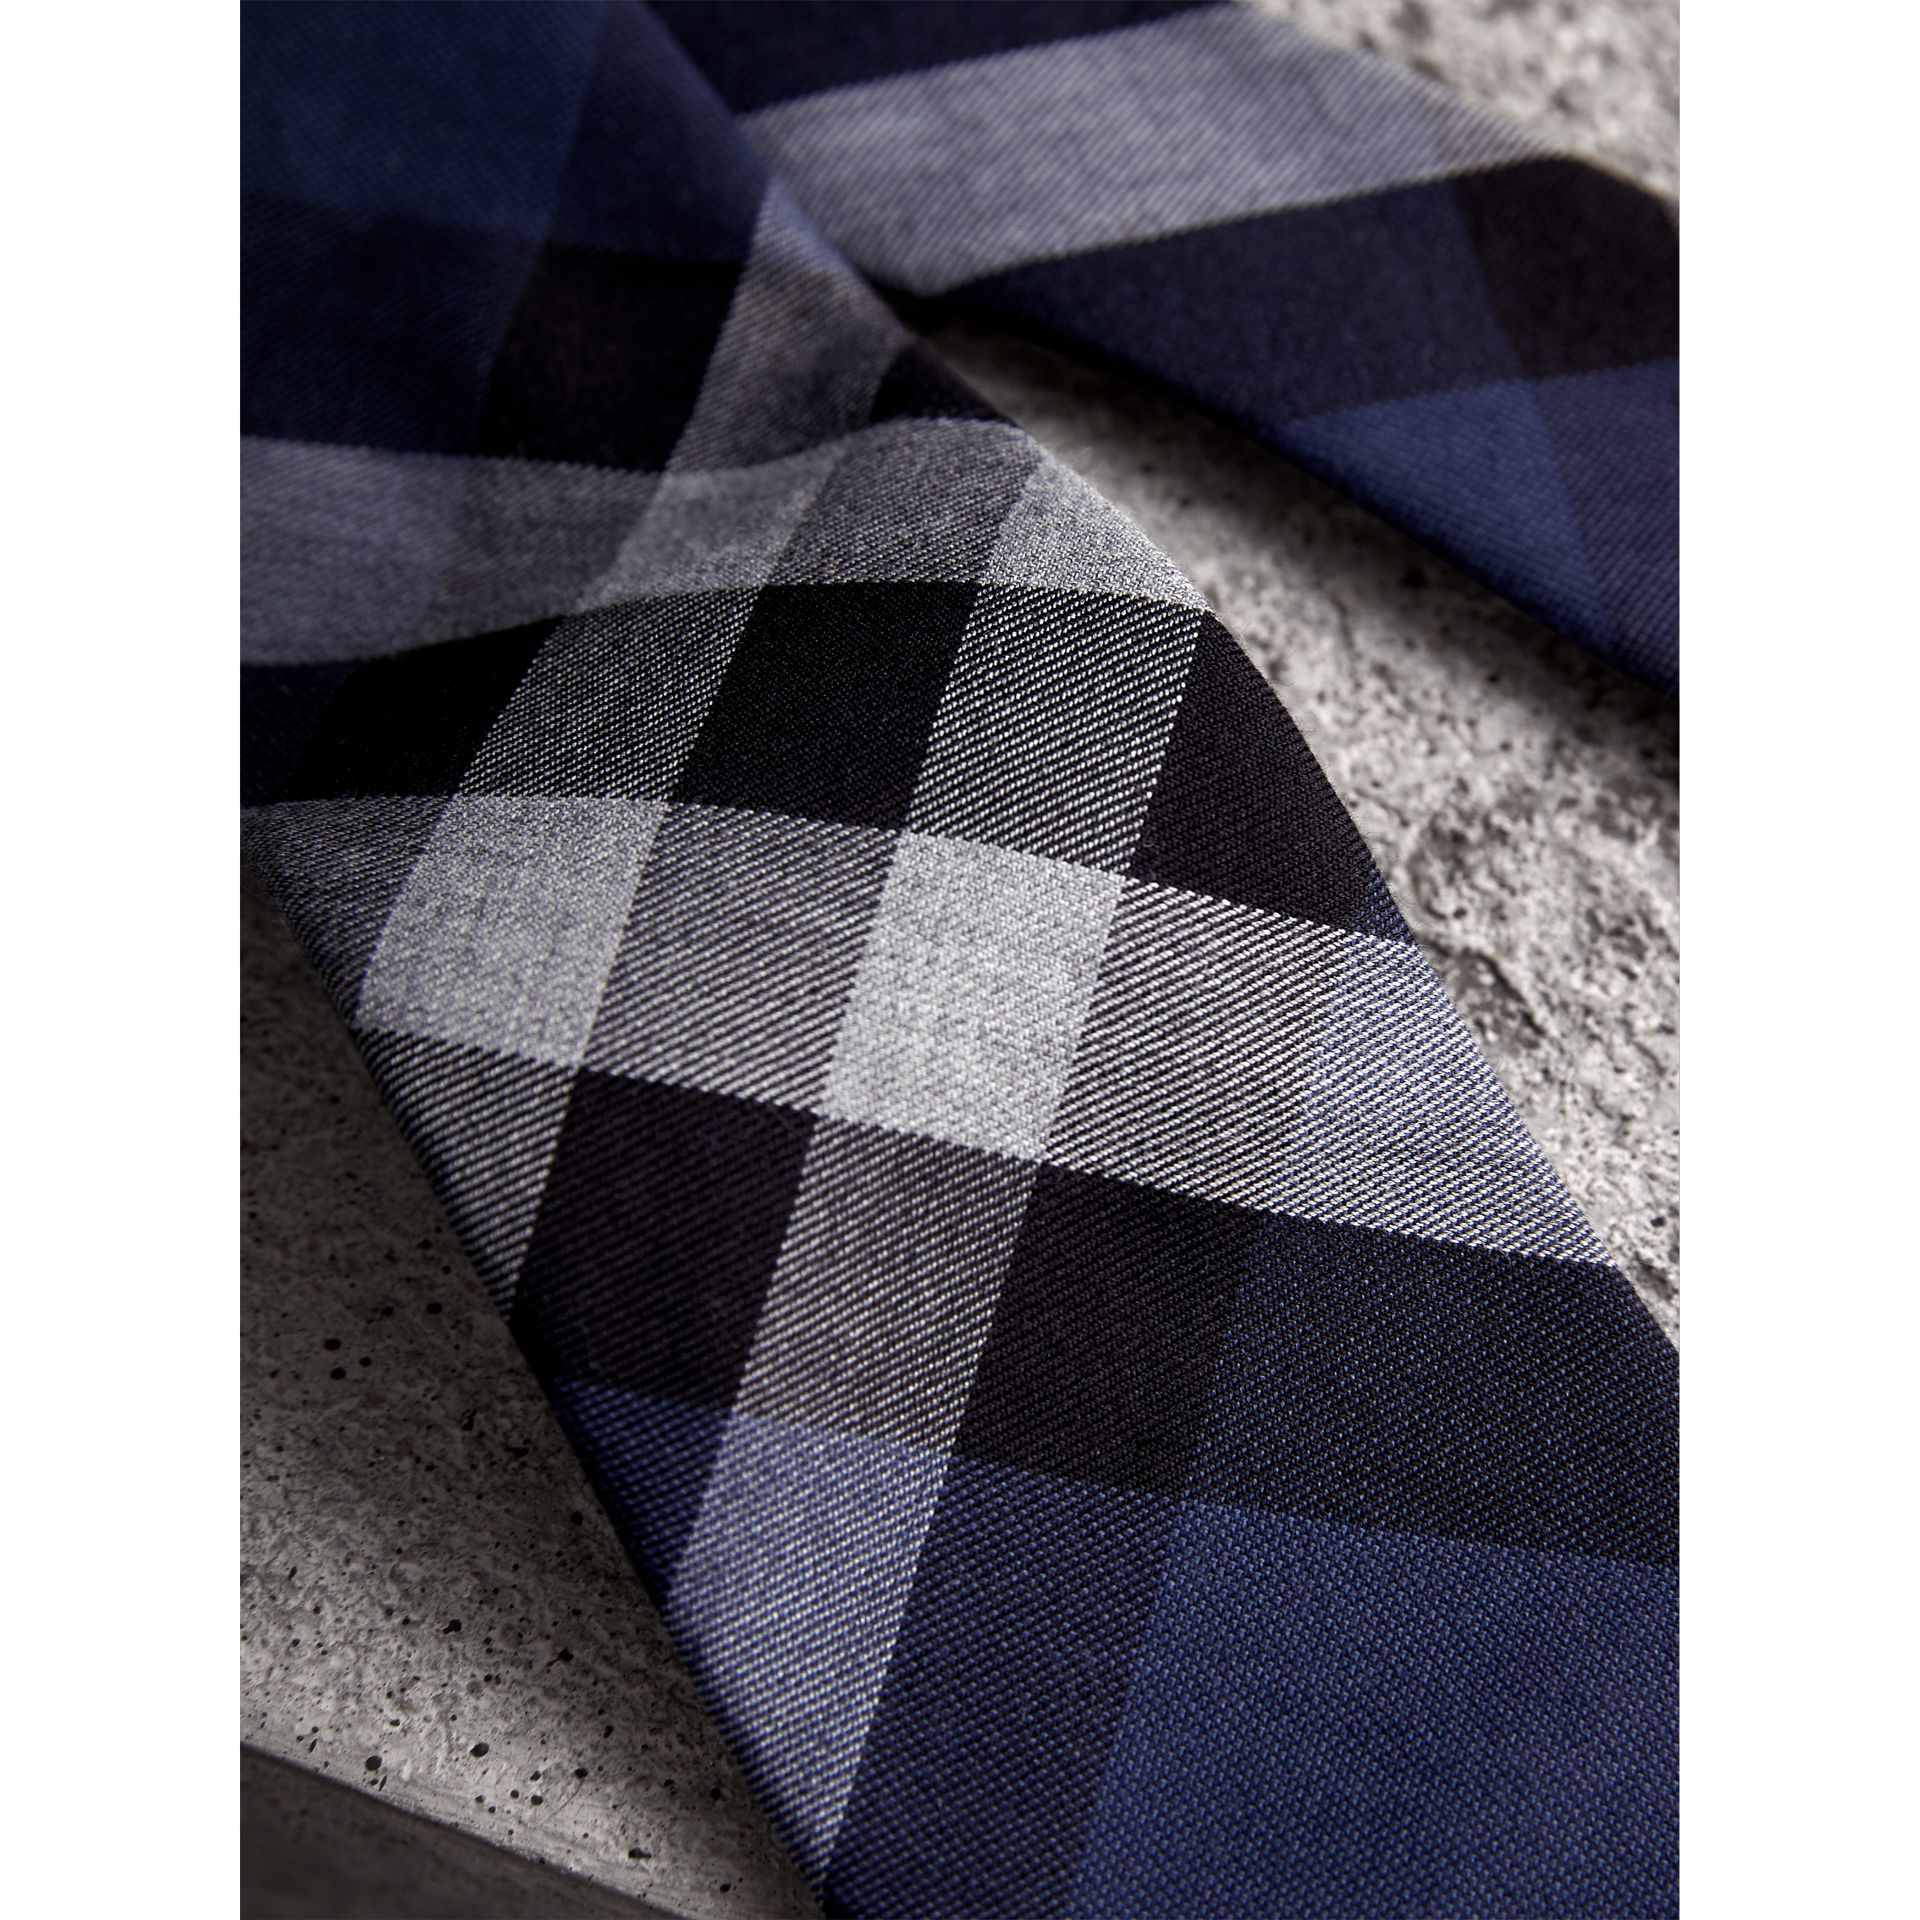 Modern Cut Check Cotton Cashmere Tie in Canvas Blue - Men | Burberry United Kingdom - gallery image 1